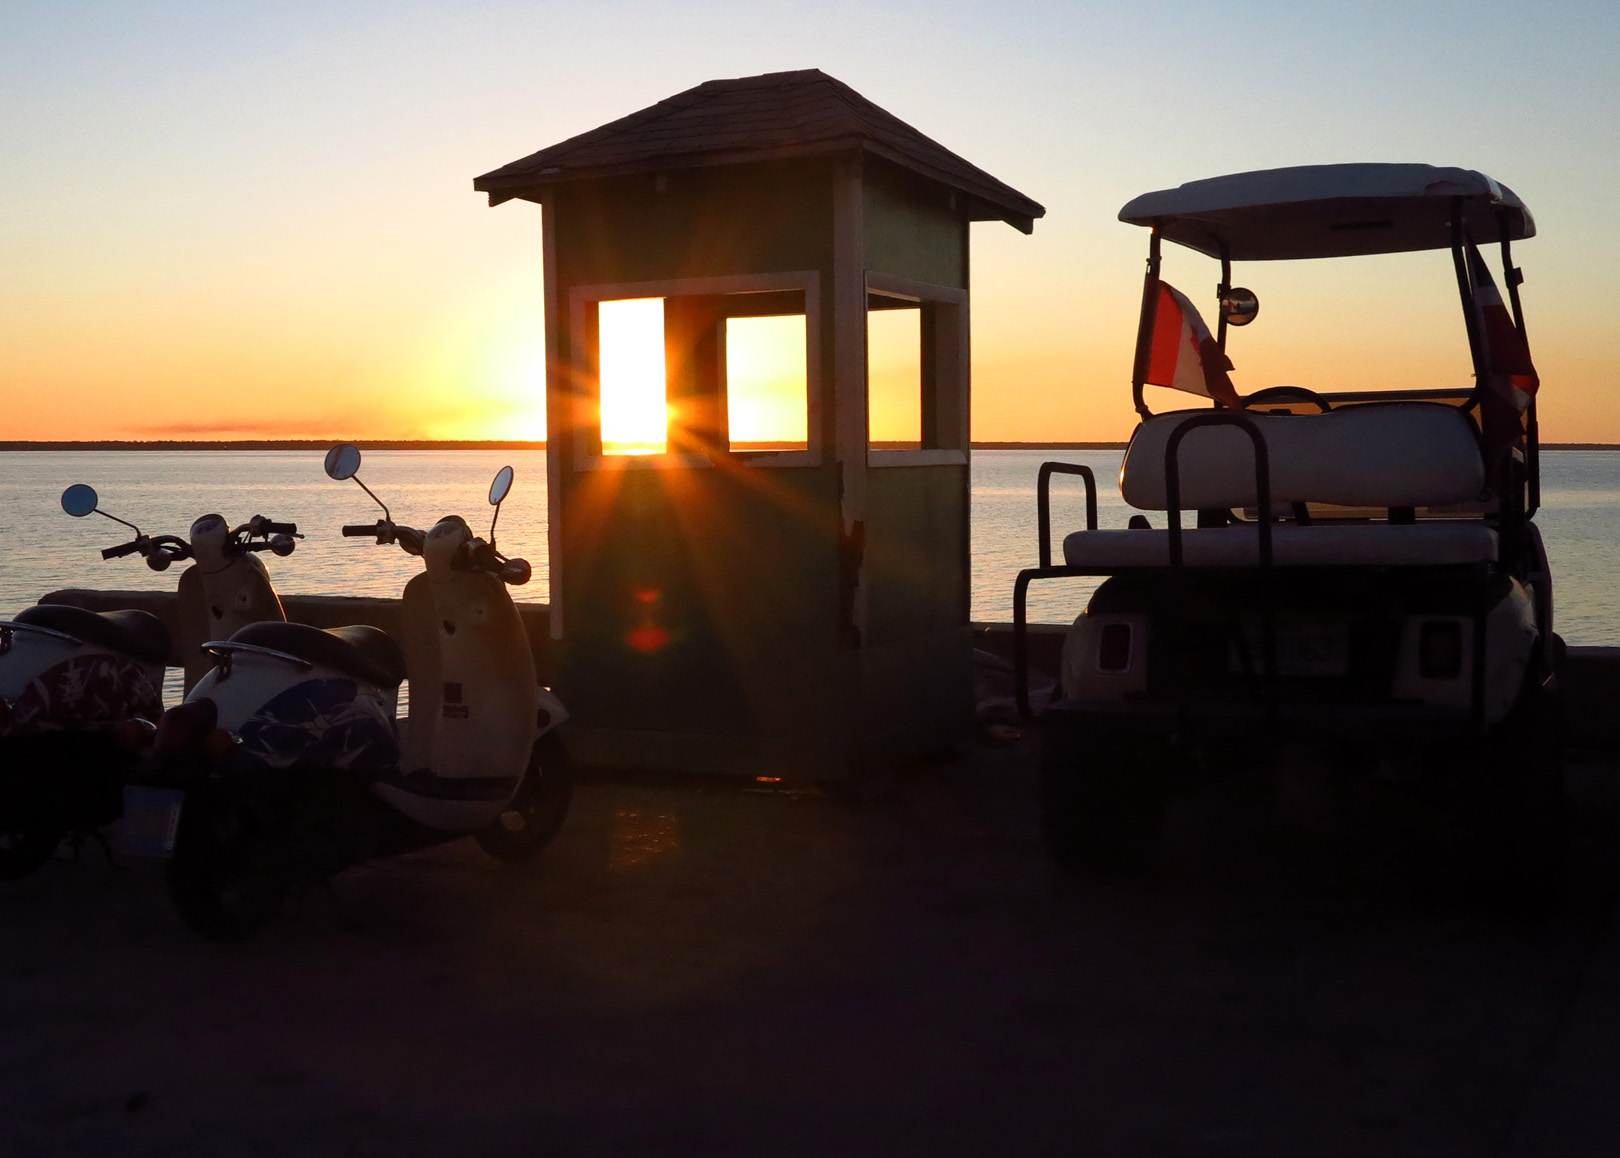 Scooters at sunset - Green Turtle Cay, Abaco, Bahamas